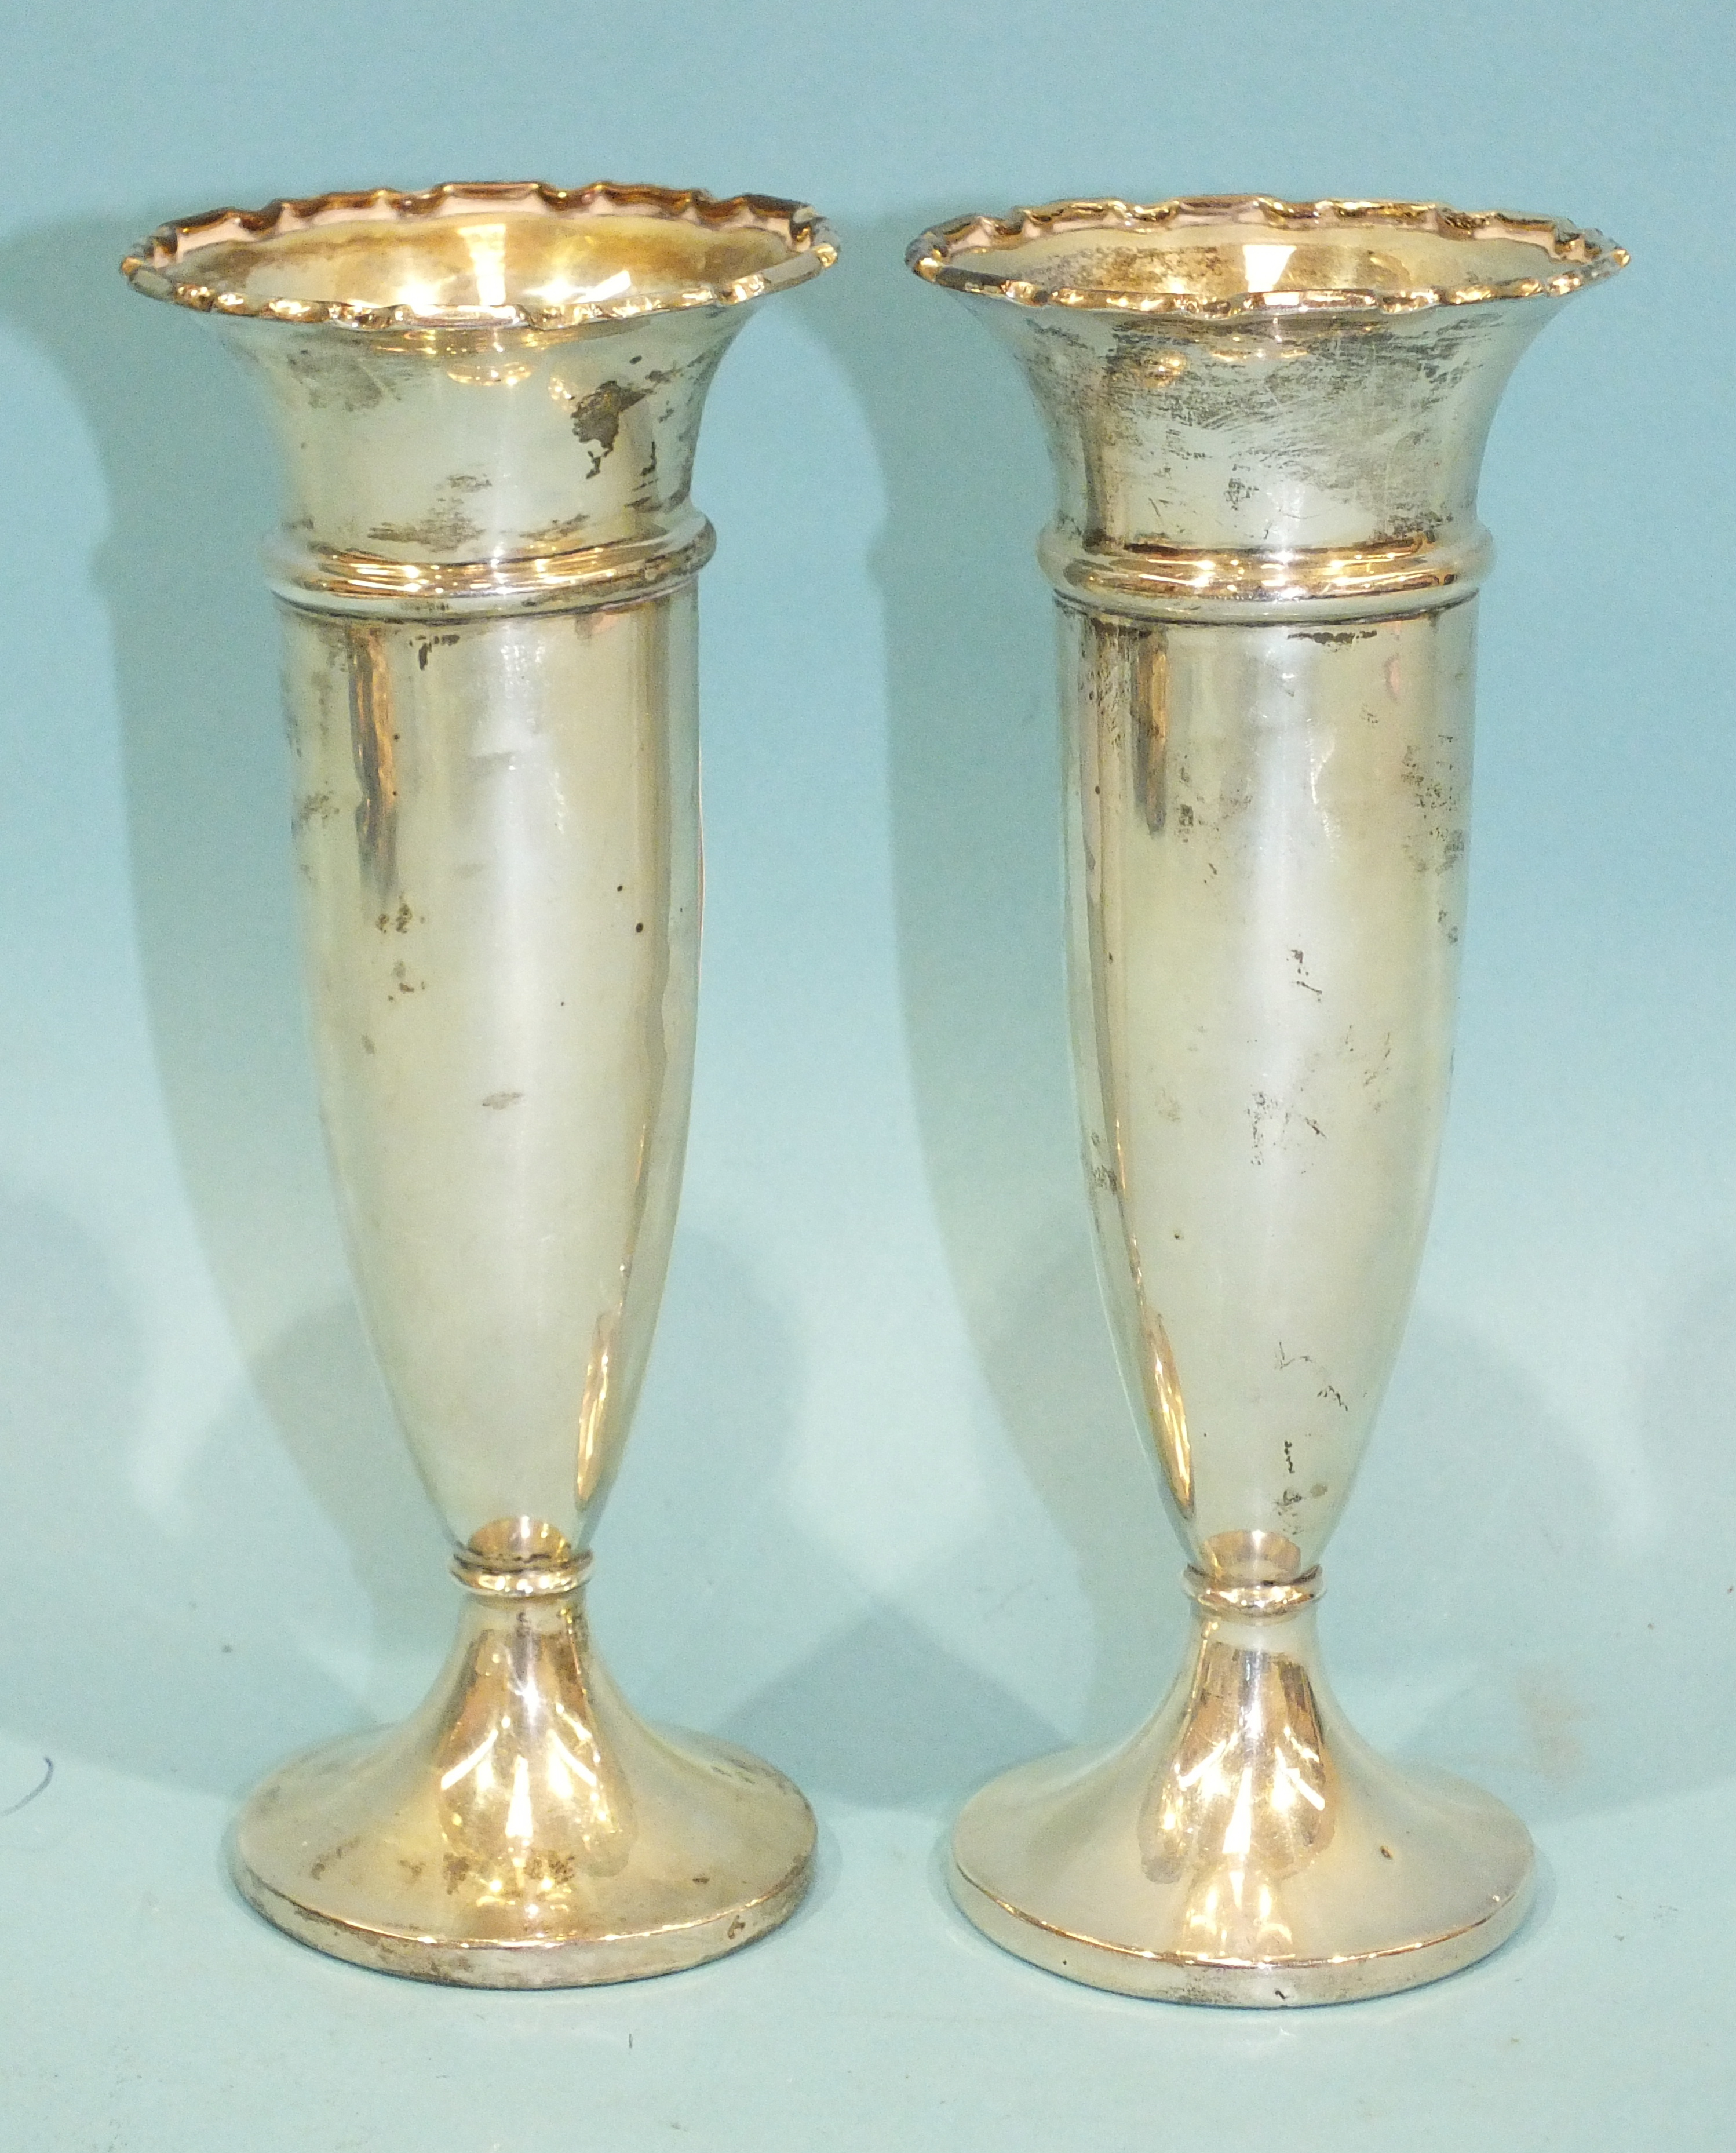 Lot 196 - A pair of silver spill vases with loaded bases, Birmingham 1914, 13.5cm high, (2).